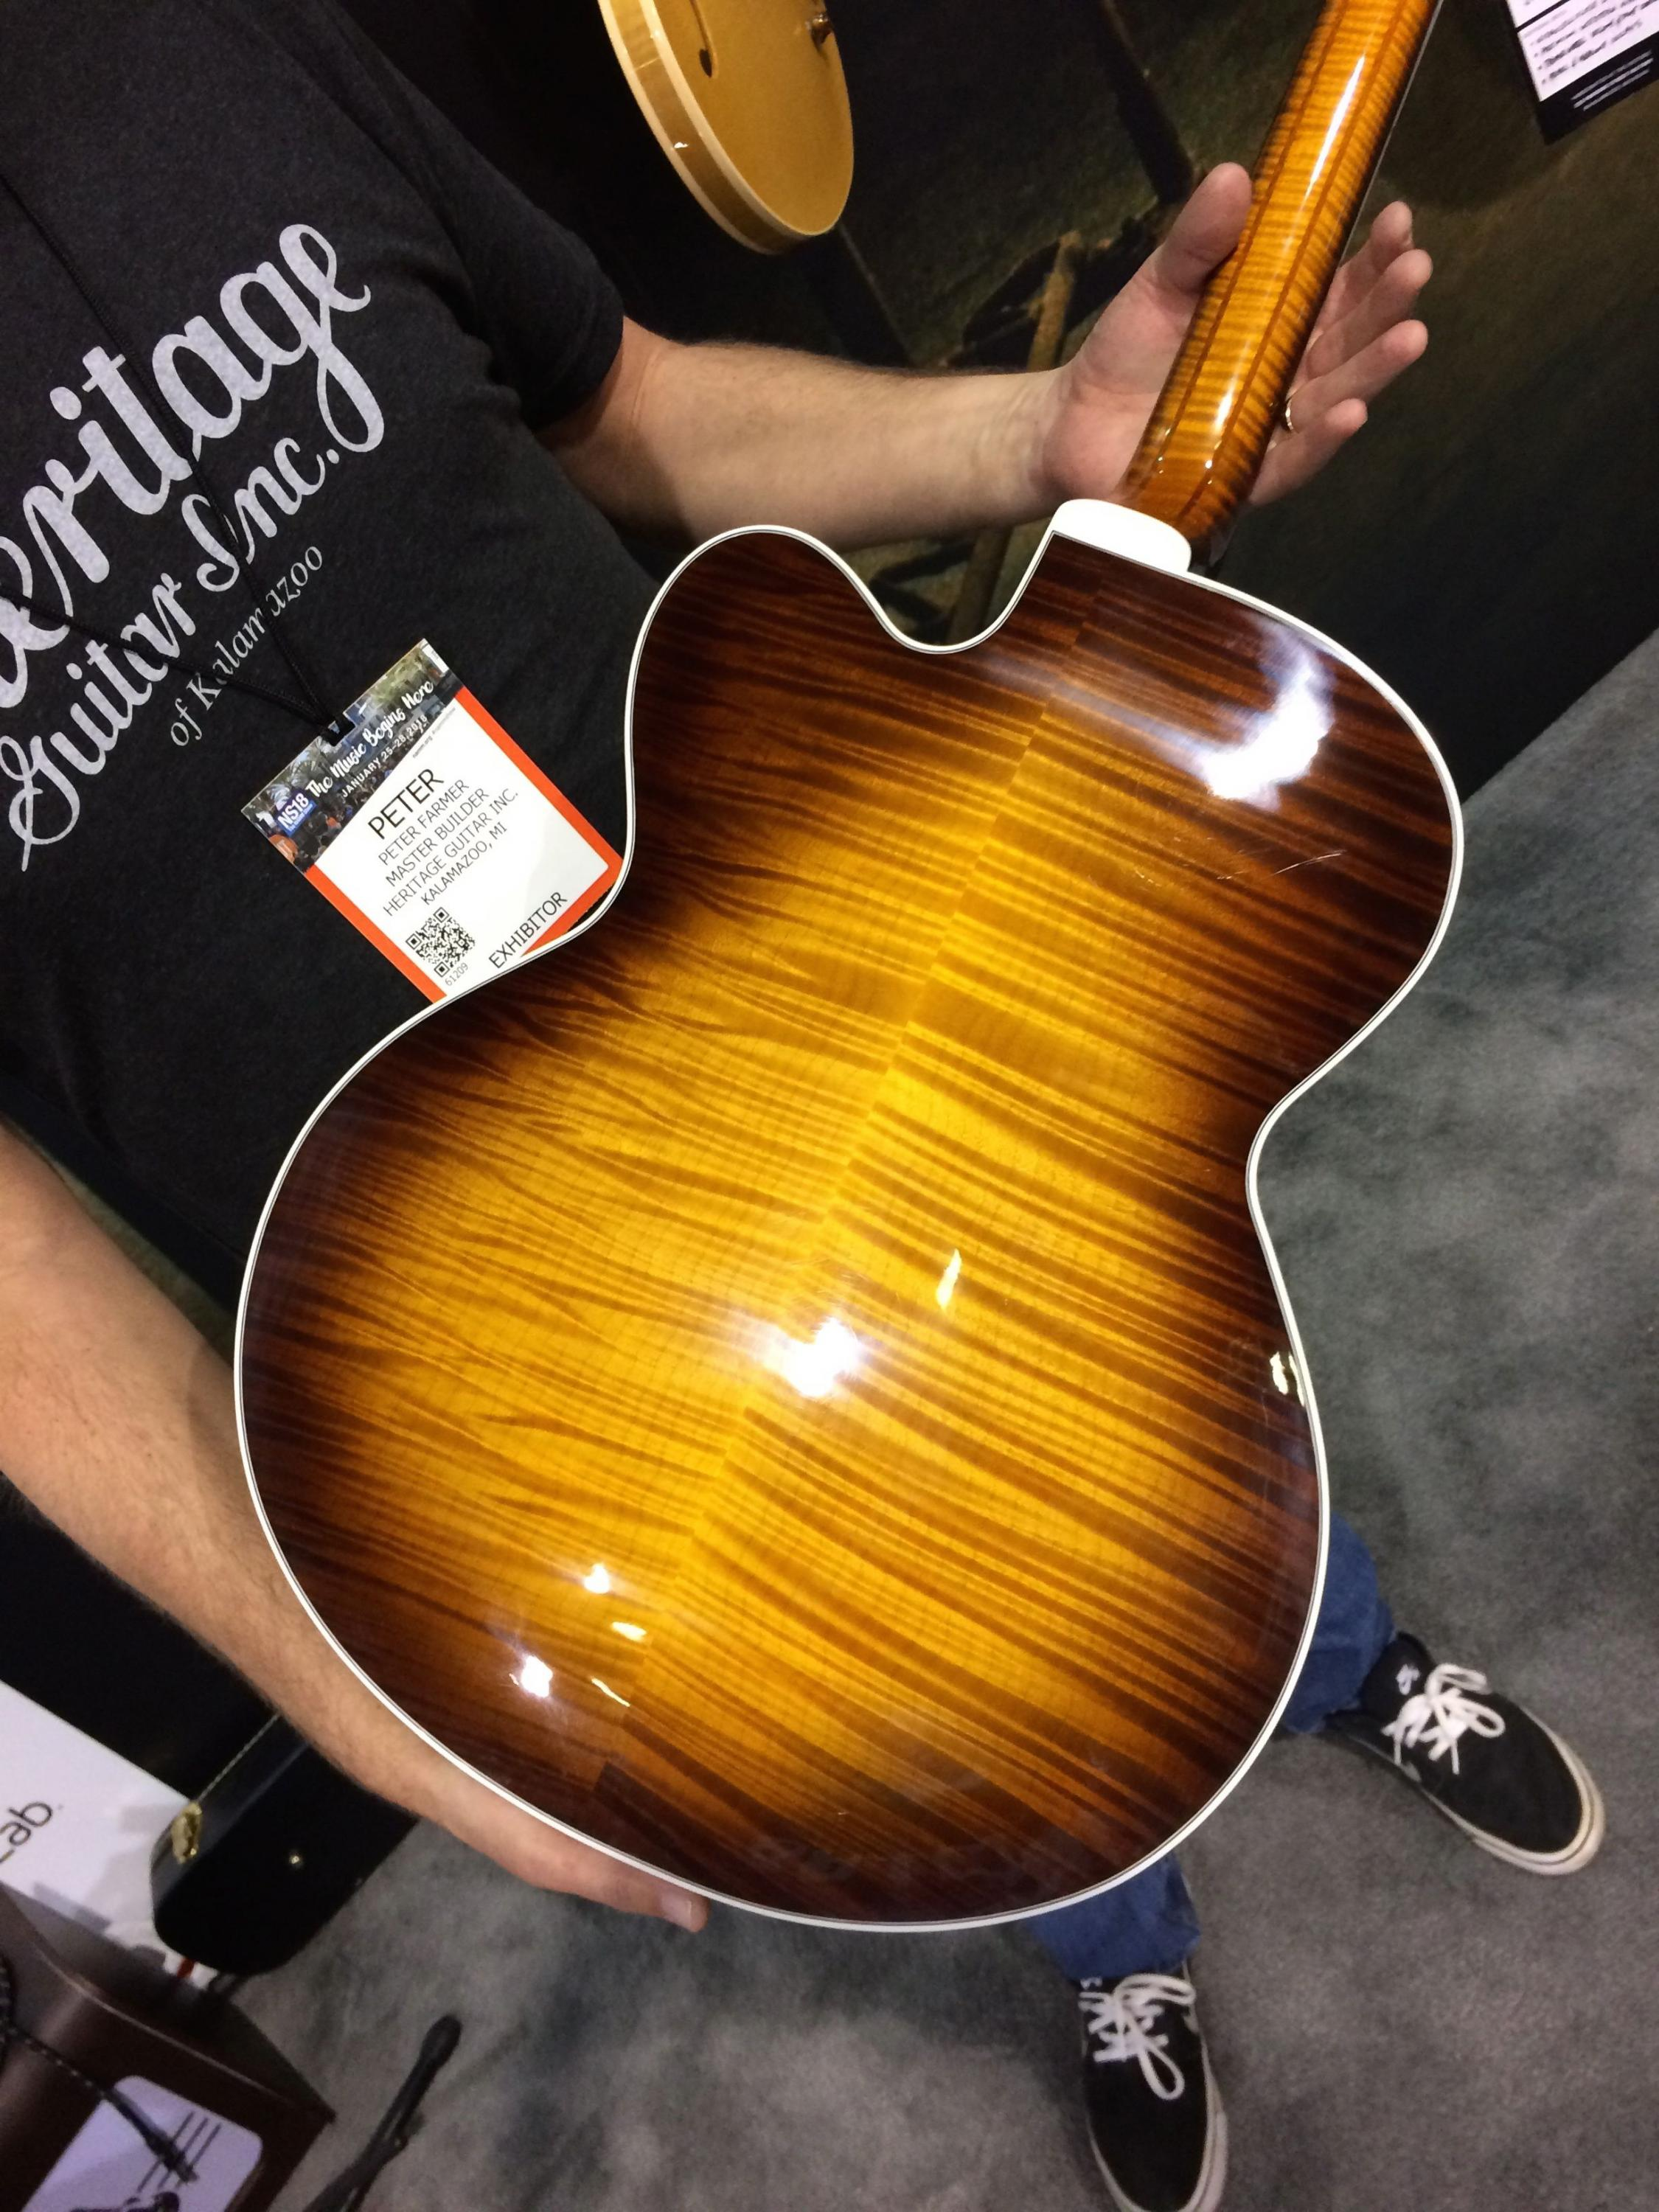 Heritage again - but seriously...-namm18_heritage_1777-jpg